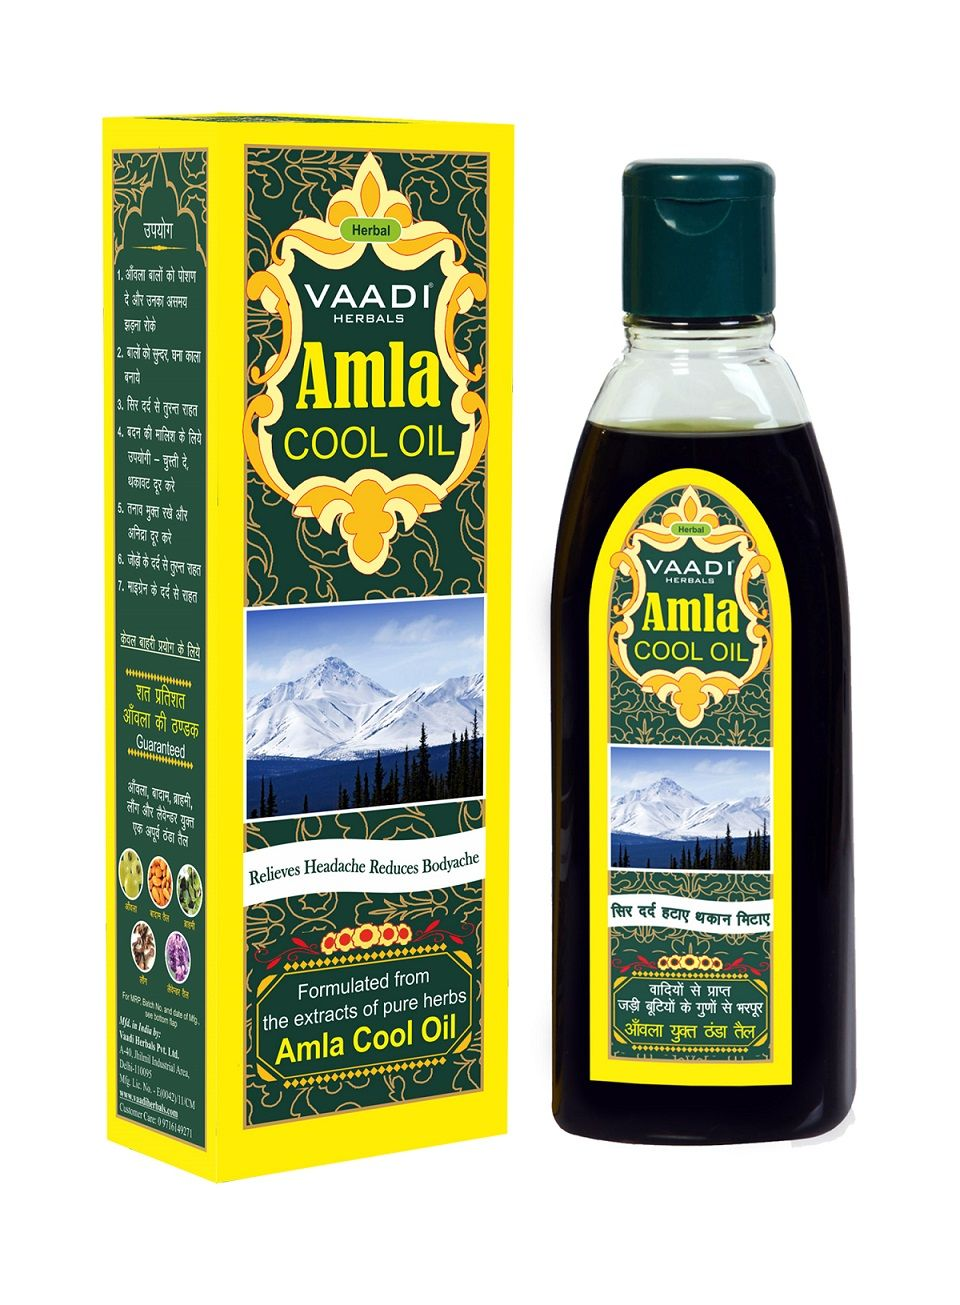 Vaadi Herbals Amla Cool Oil Relieves Headache Reduces Bodyache